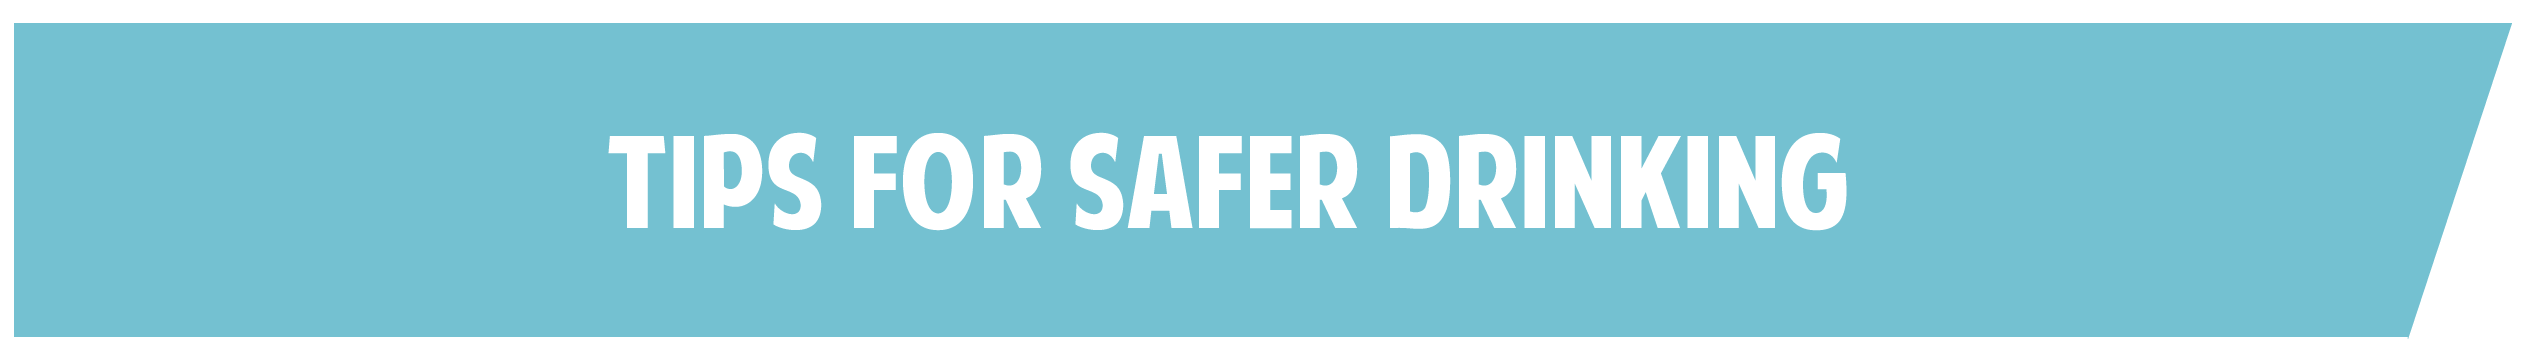 Tips for Safer Drinking at USD